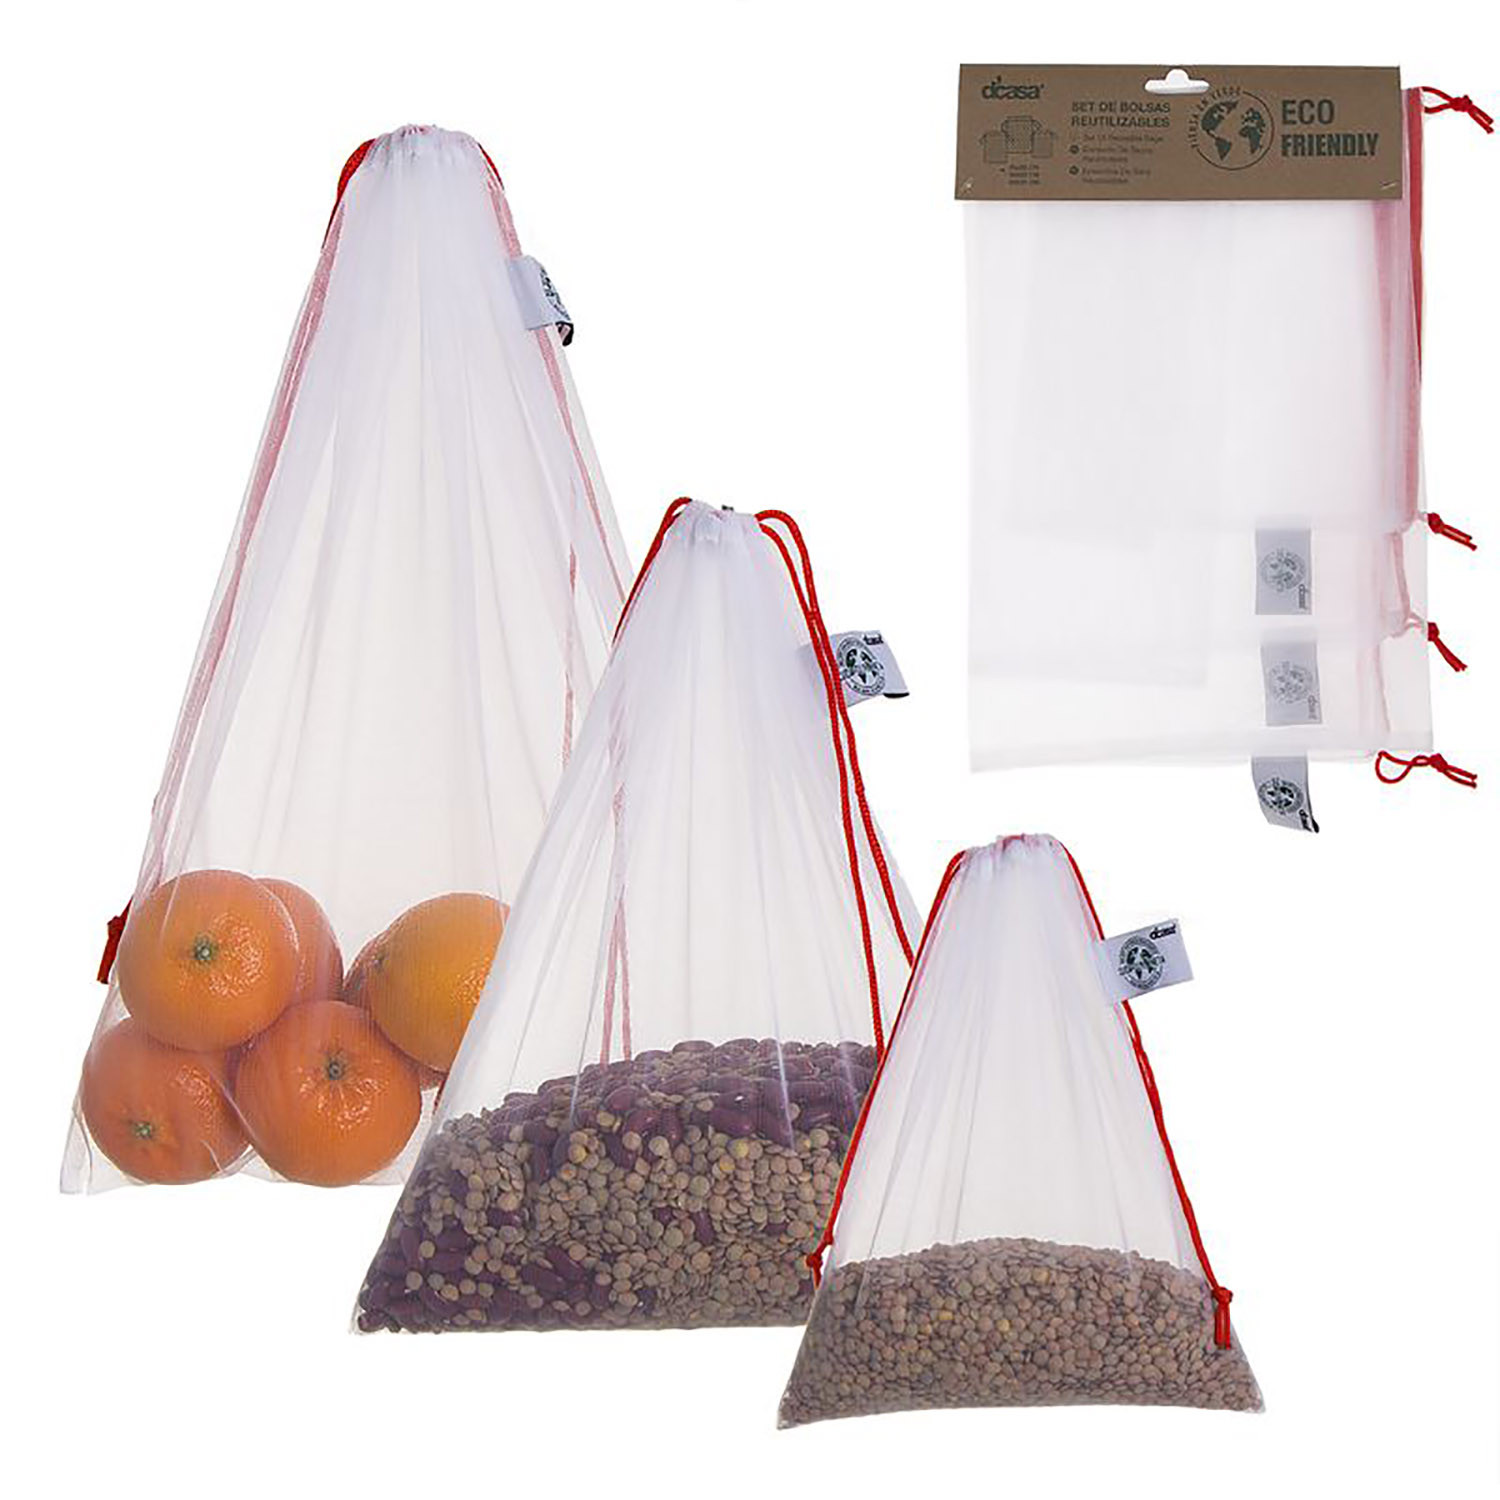 Bag Buy Re-usable, set of 3 Bags for Food. Products Eco-Friendly Set of Reusable Bags